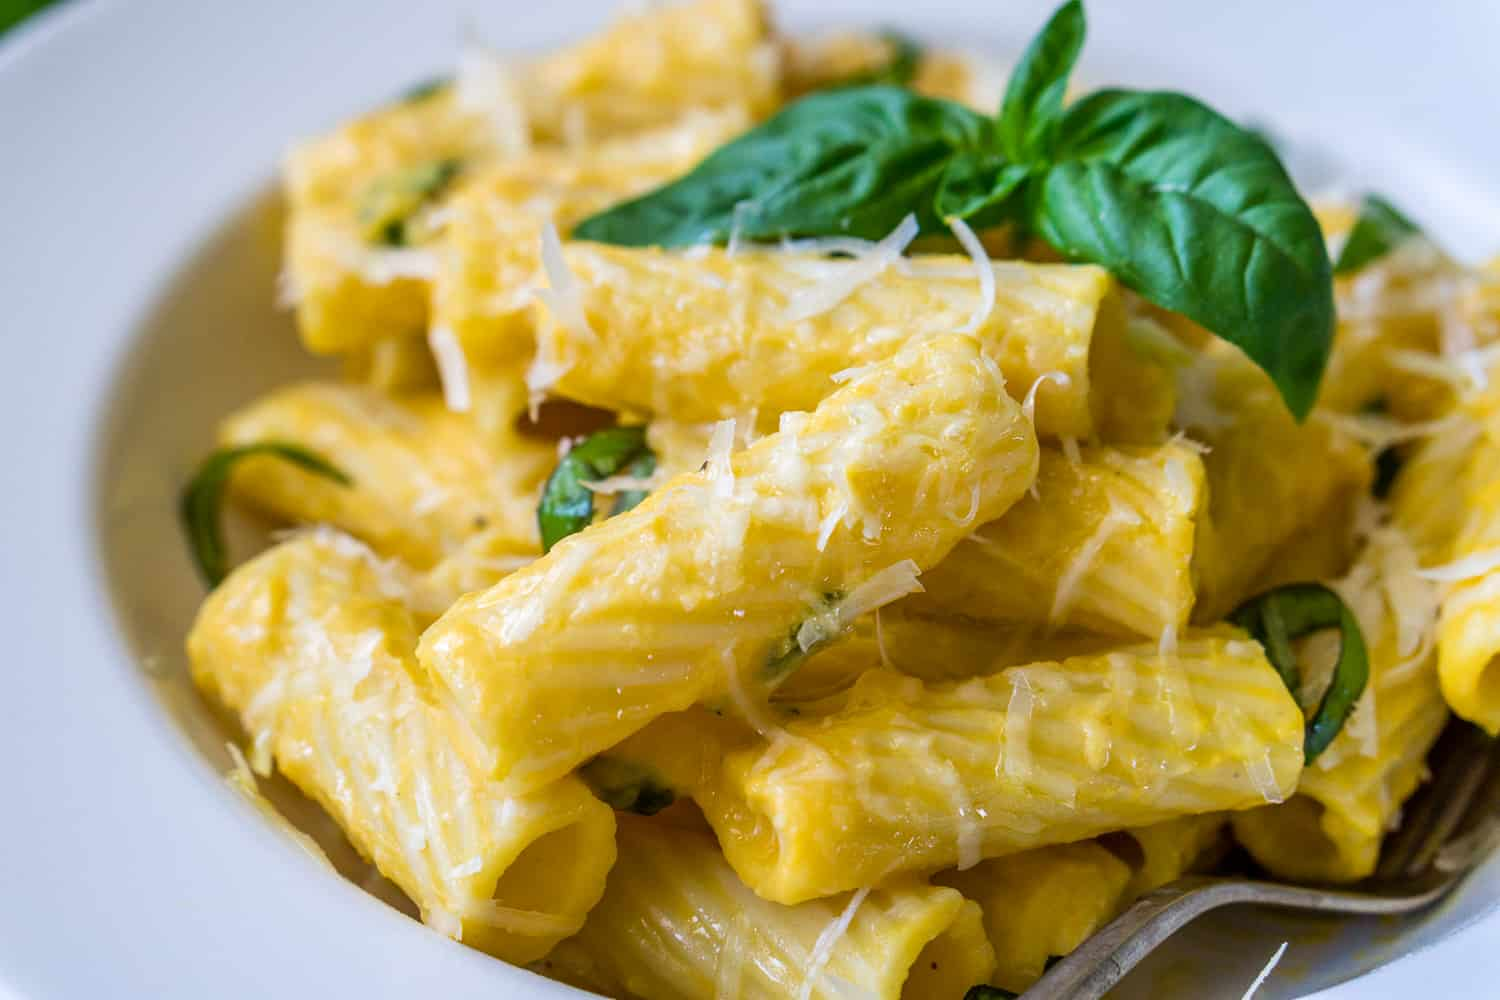 image of butternut squash alfredo pasta garnished with fresh basil